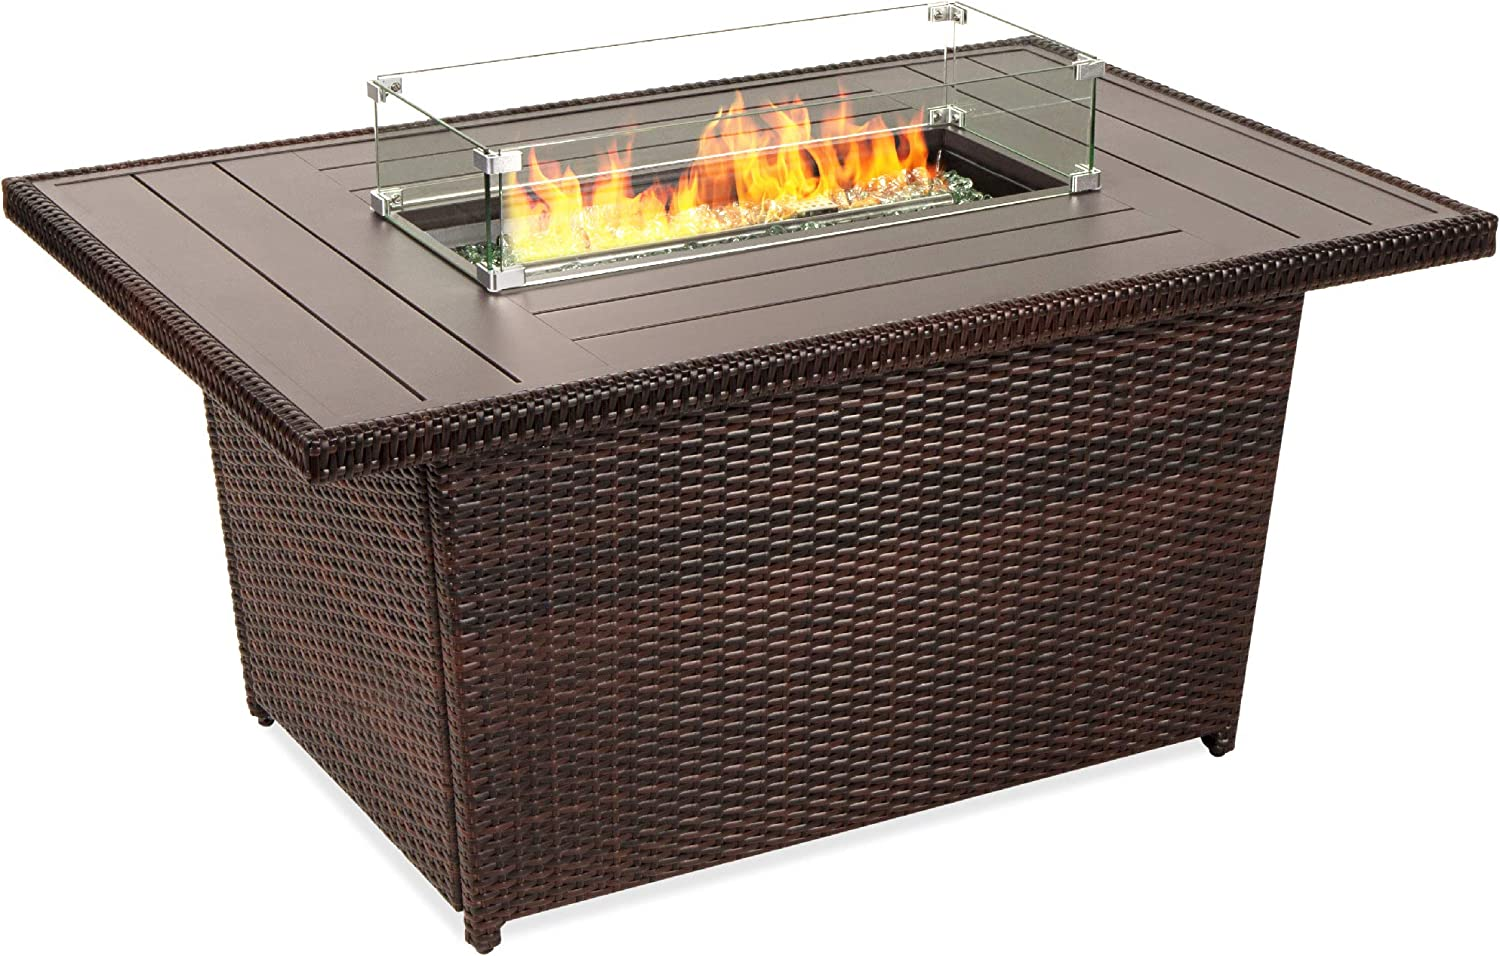 Amazon Com Best Choice Products 52in 50 000 Btu Outdoor Wicker Patio Propane Gas Fire Pit Table W Aluminum Tabletop Glass Wind Guard Clear Glass Rocks Cover Slide Out Tank Holder And Lid